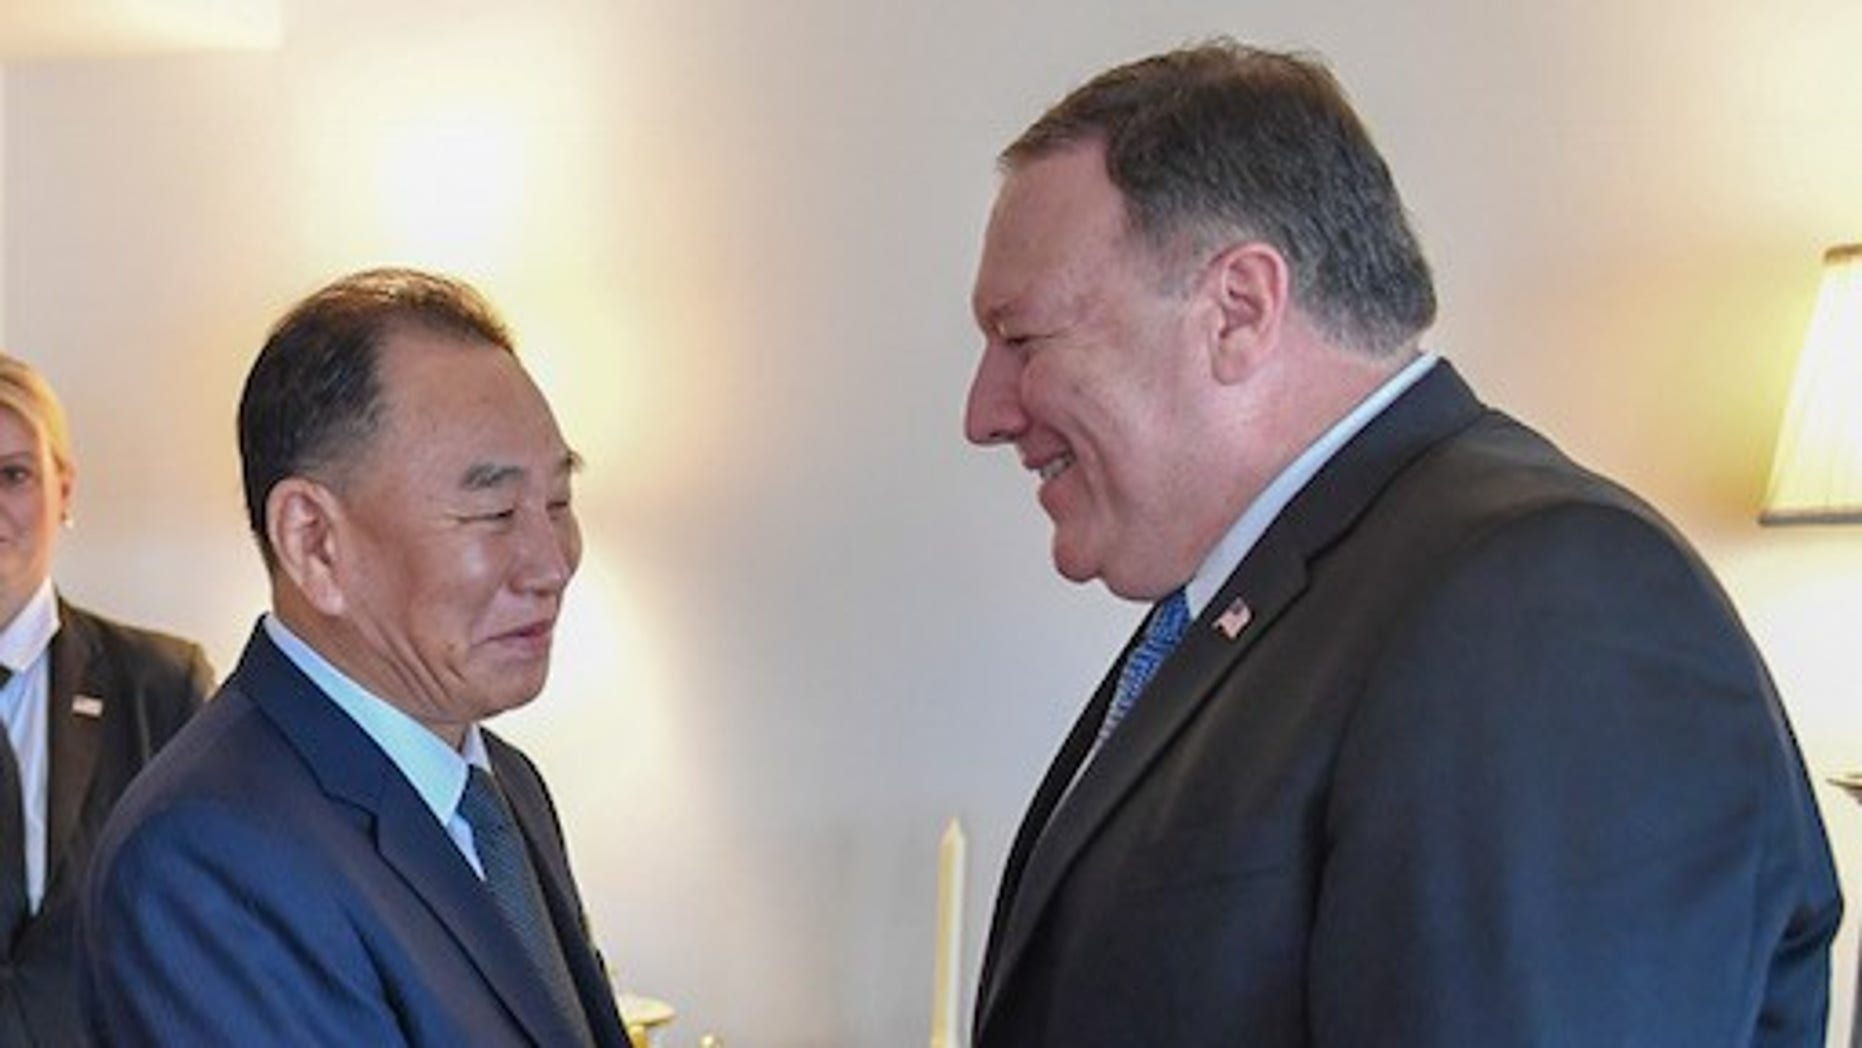 Kim Yong Chol, of North Korea, meets with Secretary of State Mike Pompeo last month in New York City.